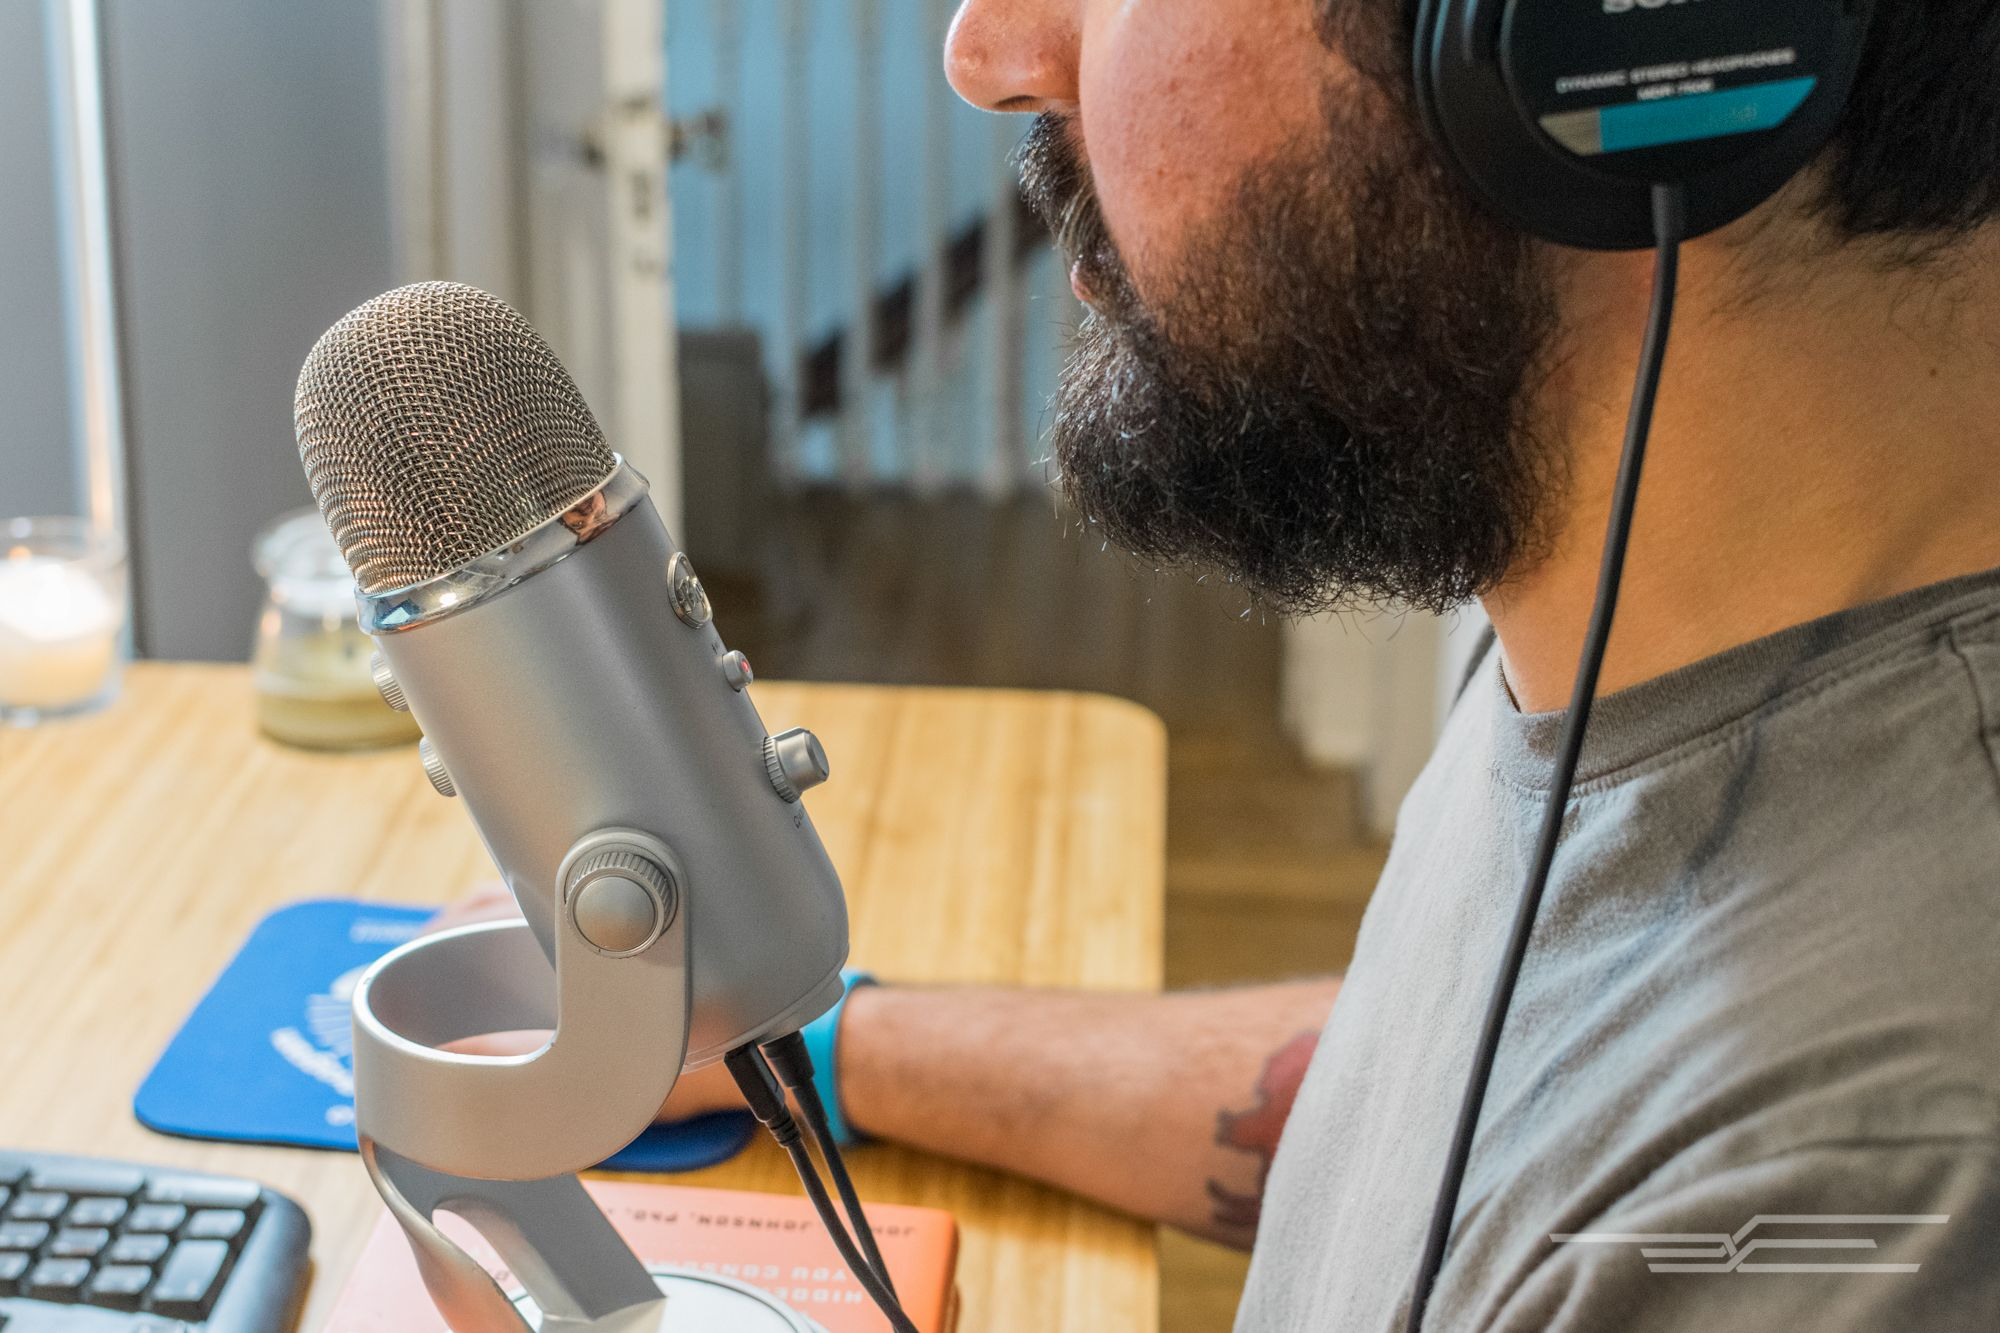 The Best Usb Microphone By Kevin Purdy And Lauren Dragan This Post Was Done In Partnership With The Wirecutter A Usb Microphone Best Usb Microphone Microphone